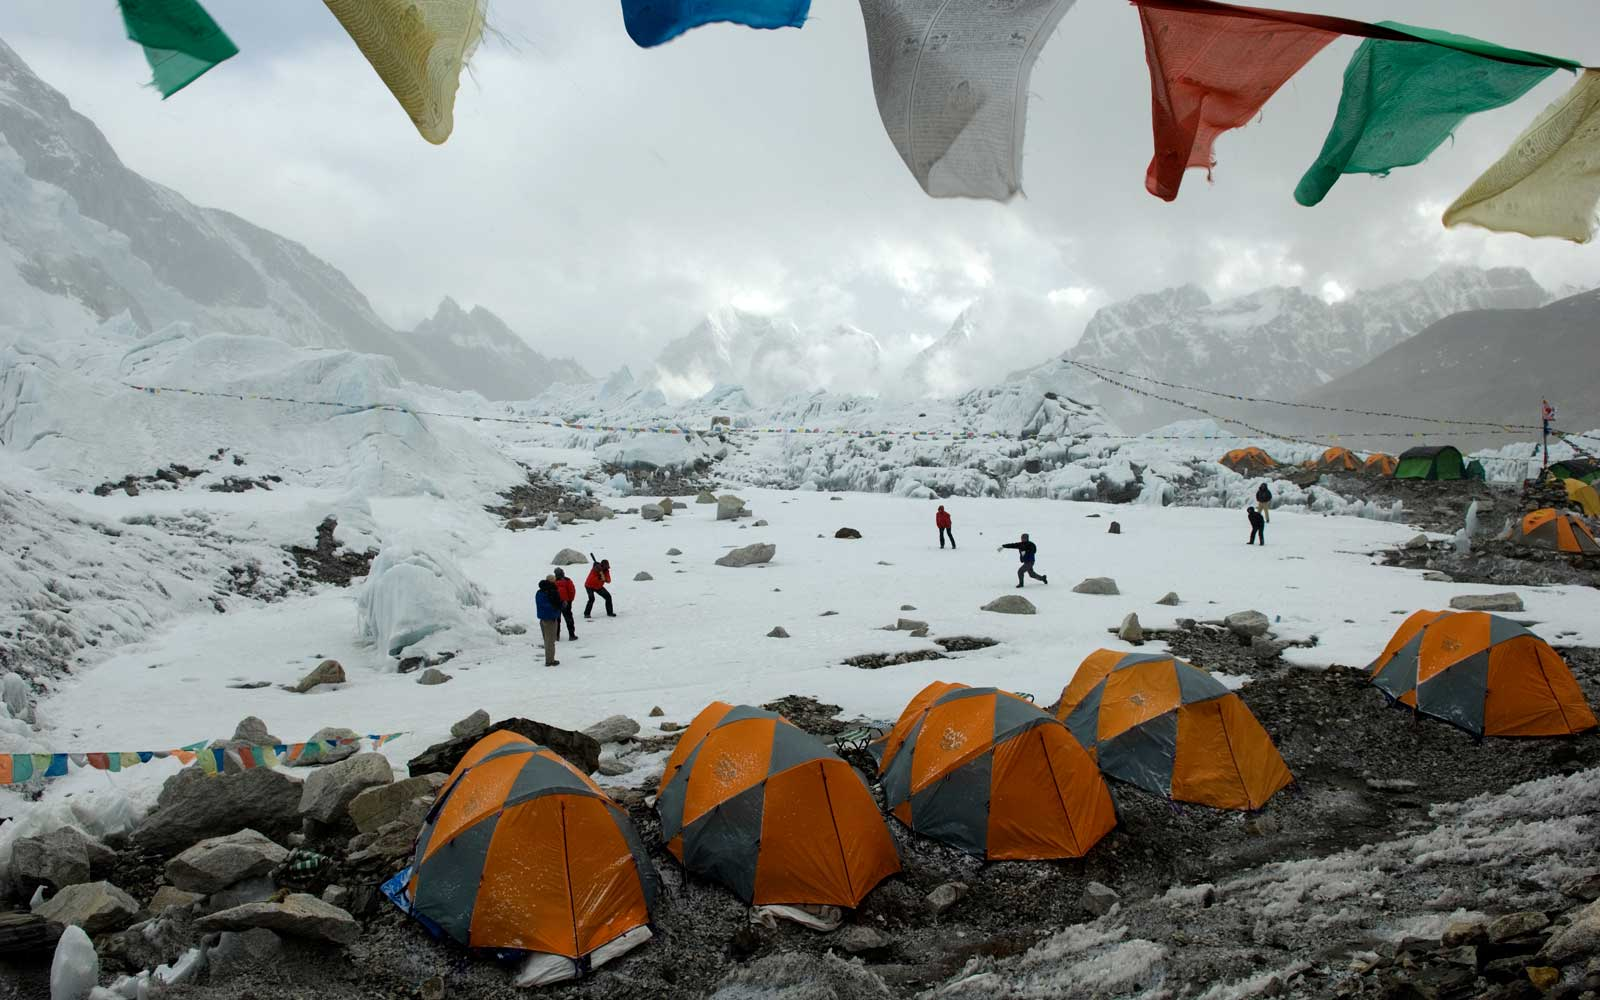 Climbers at a Mount Everest base camp